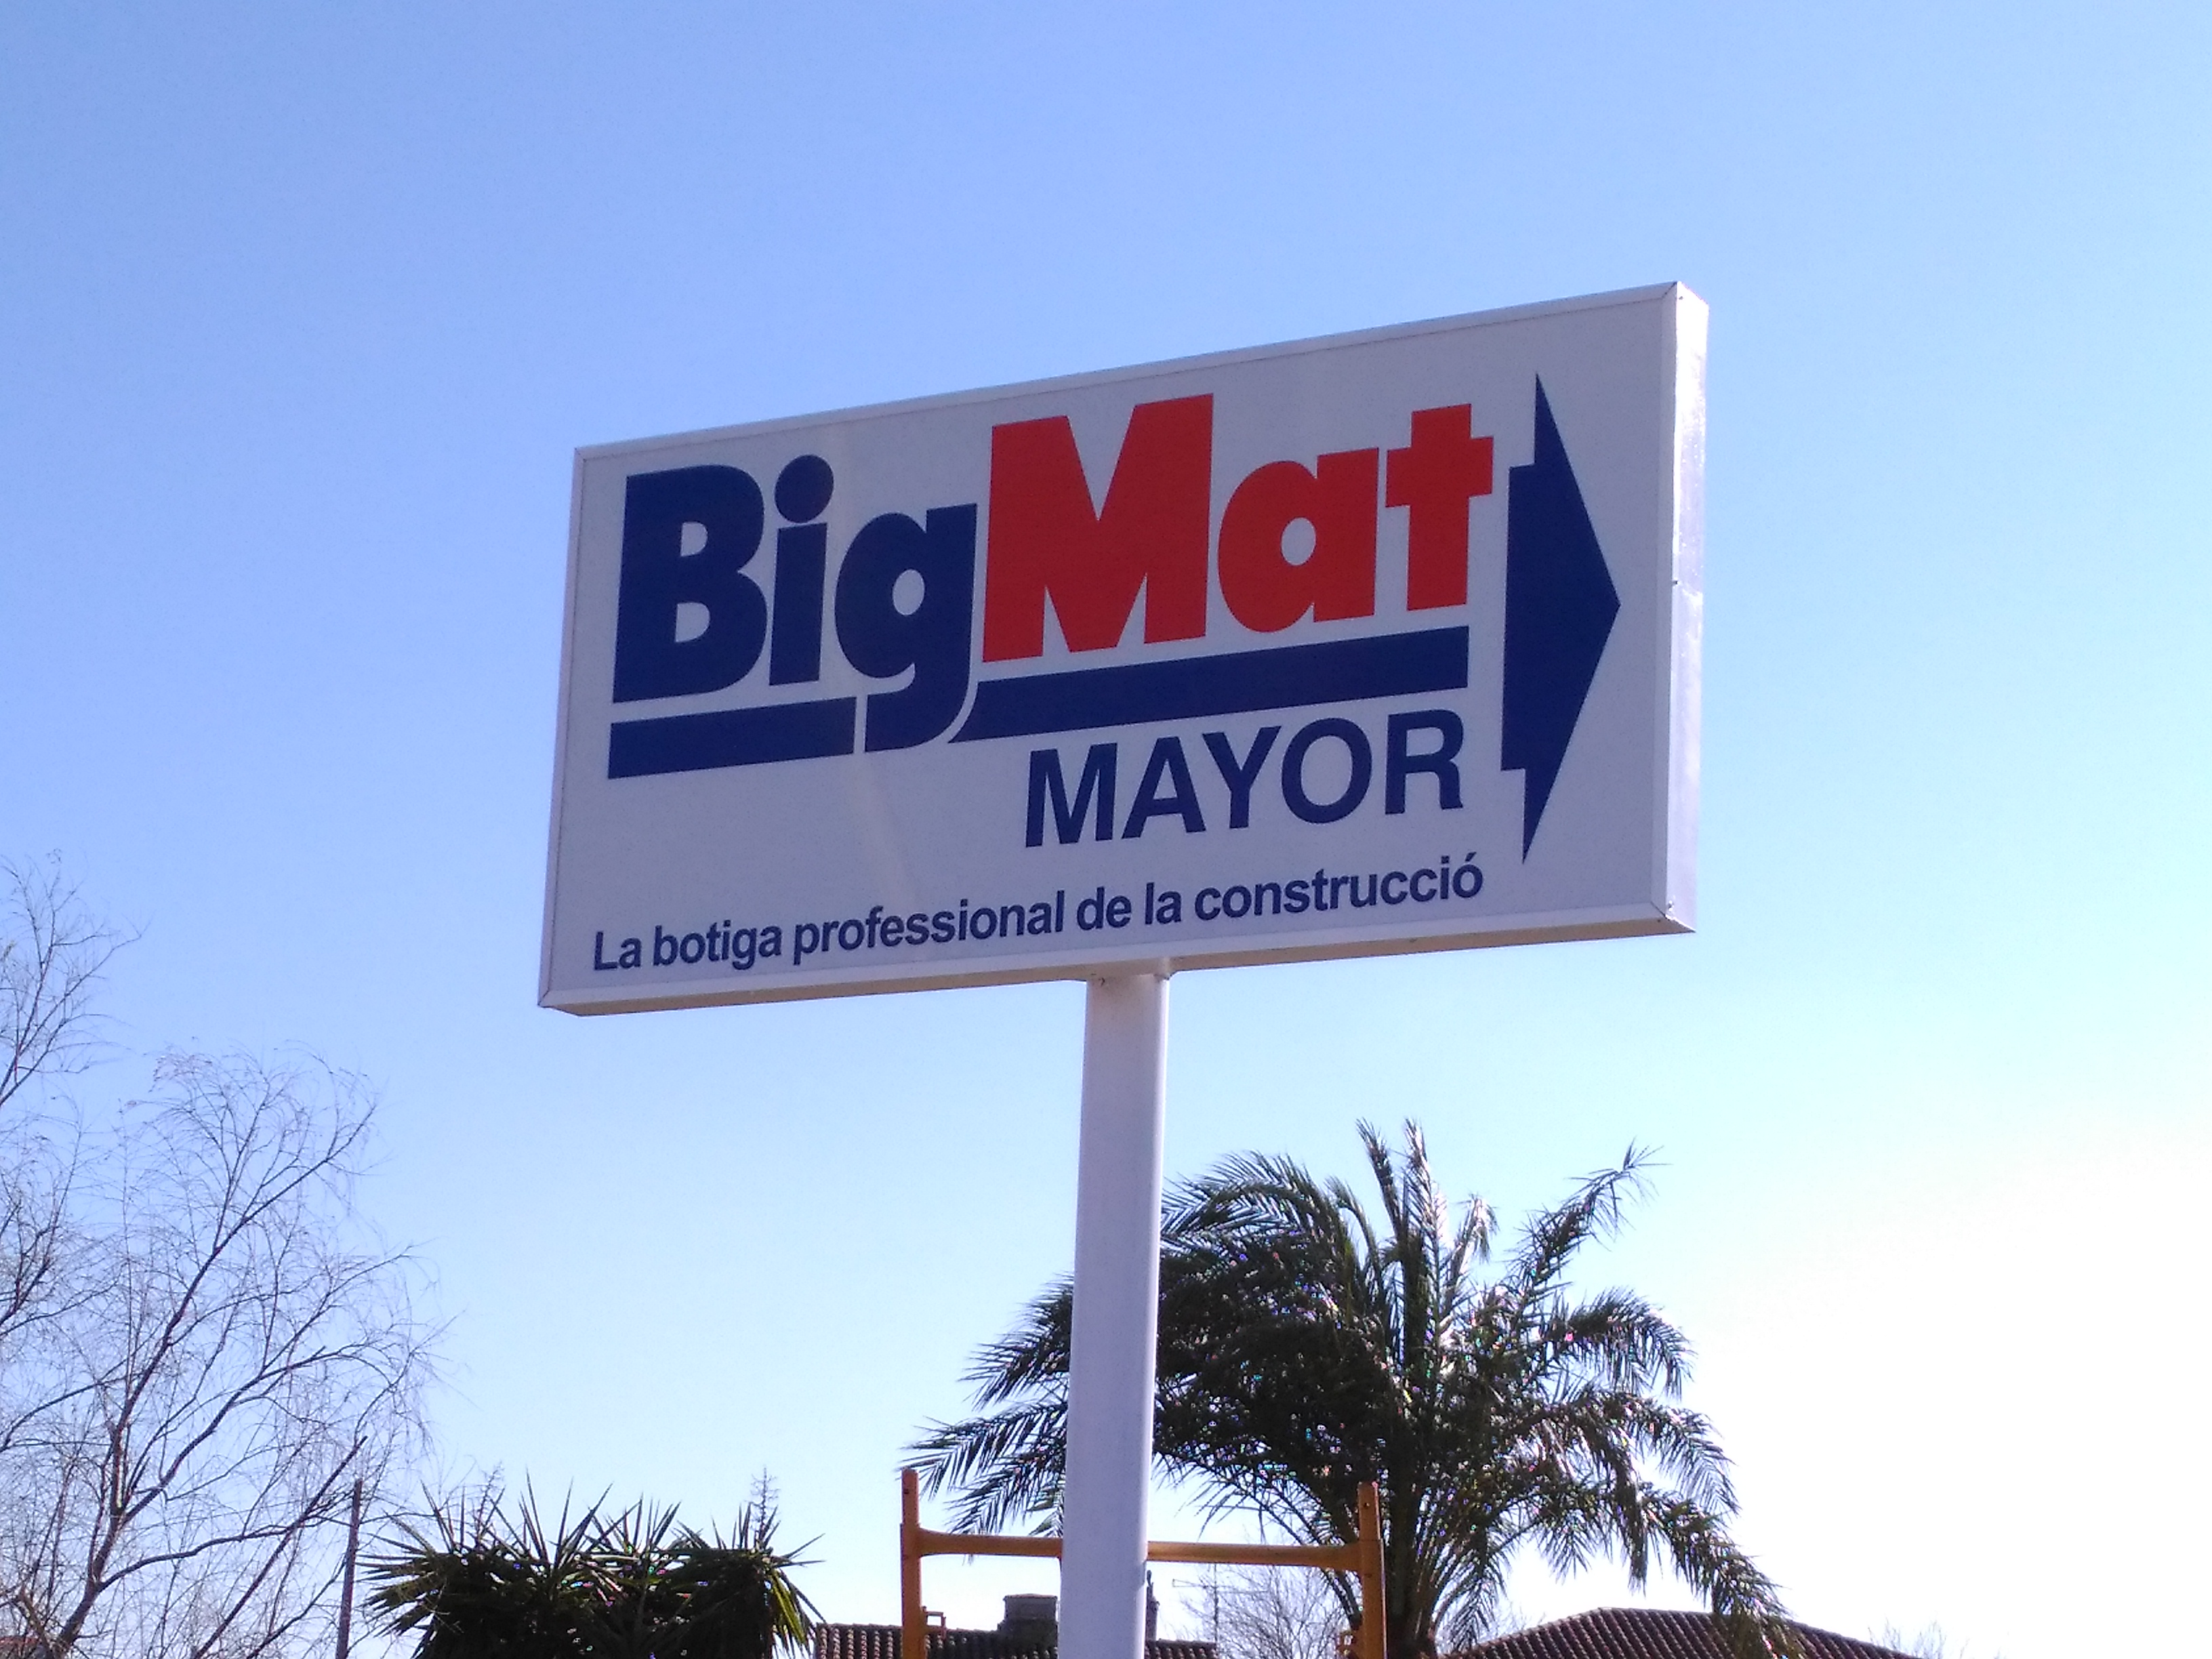 BIGMAT MAYOR